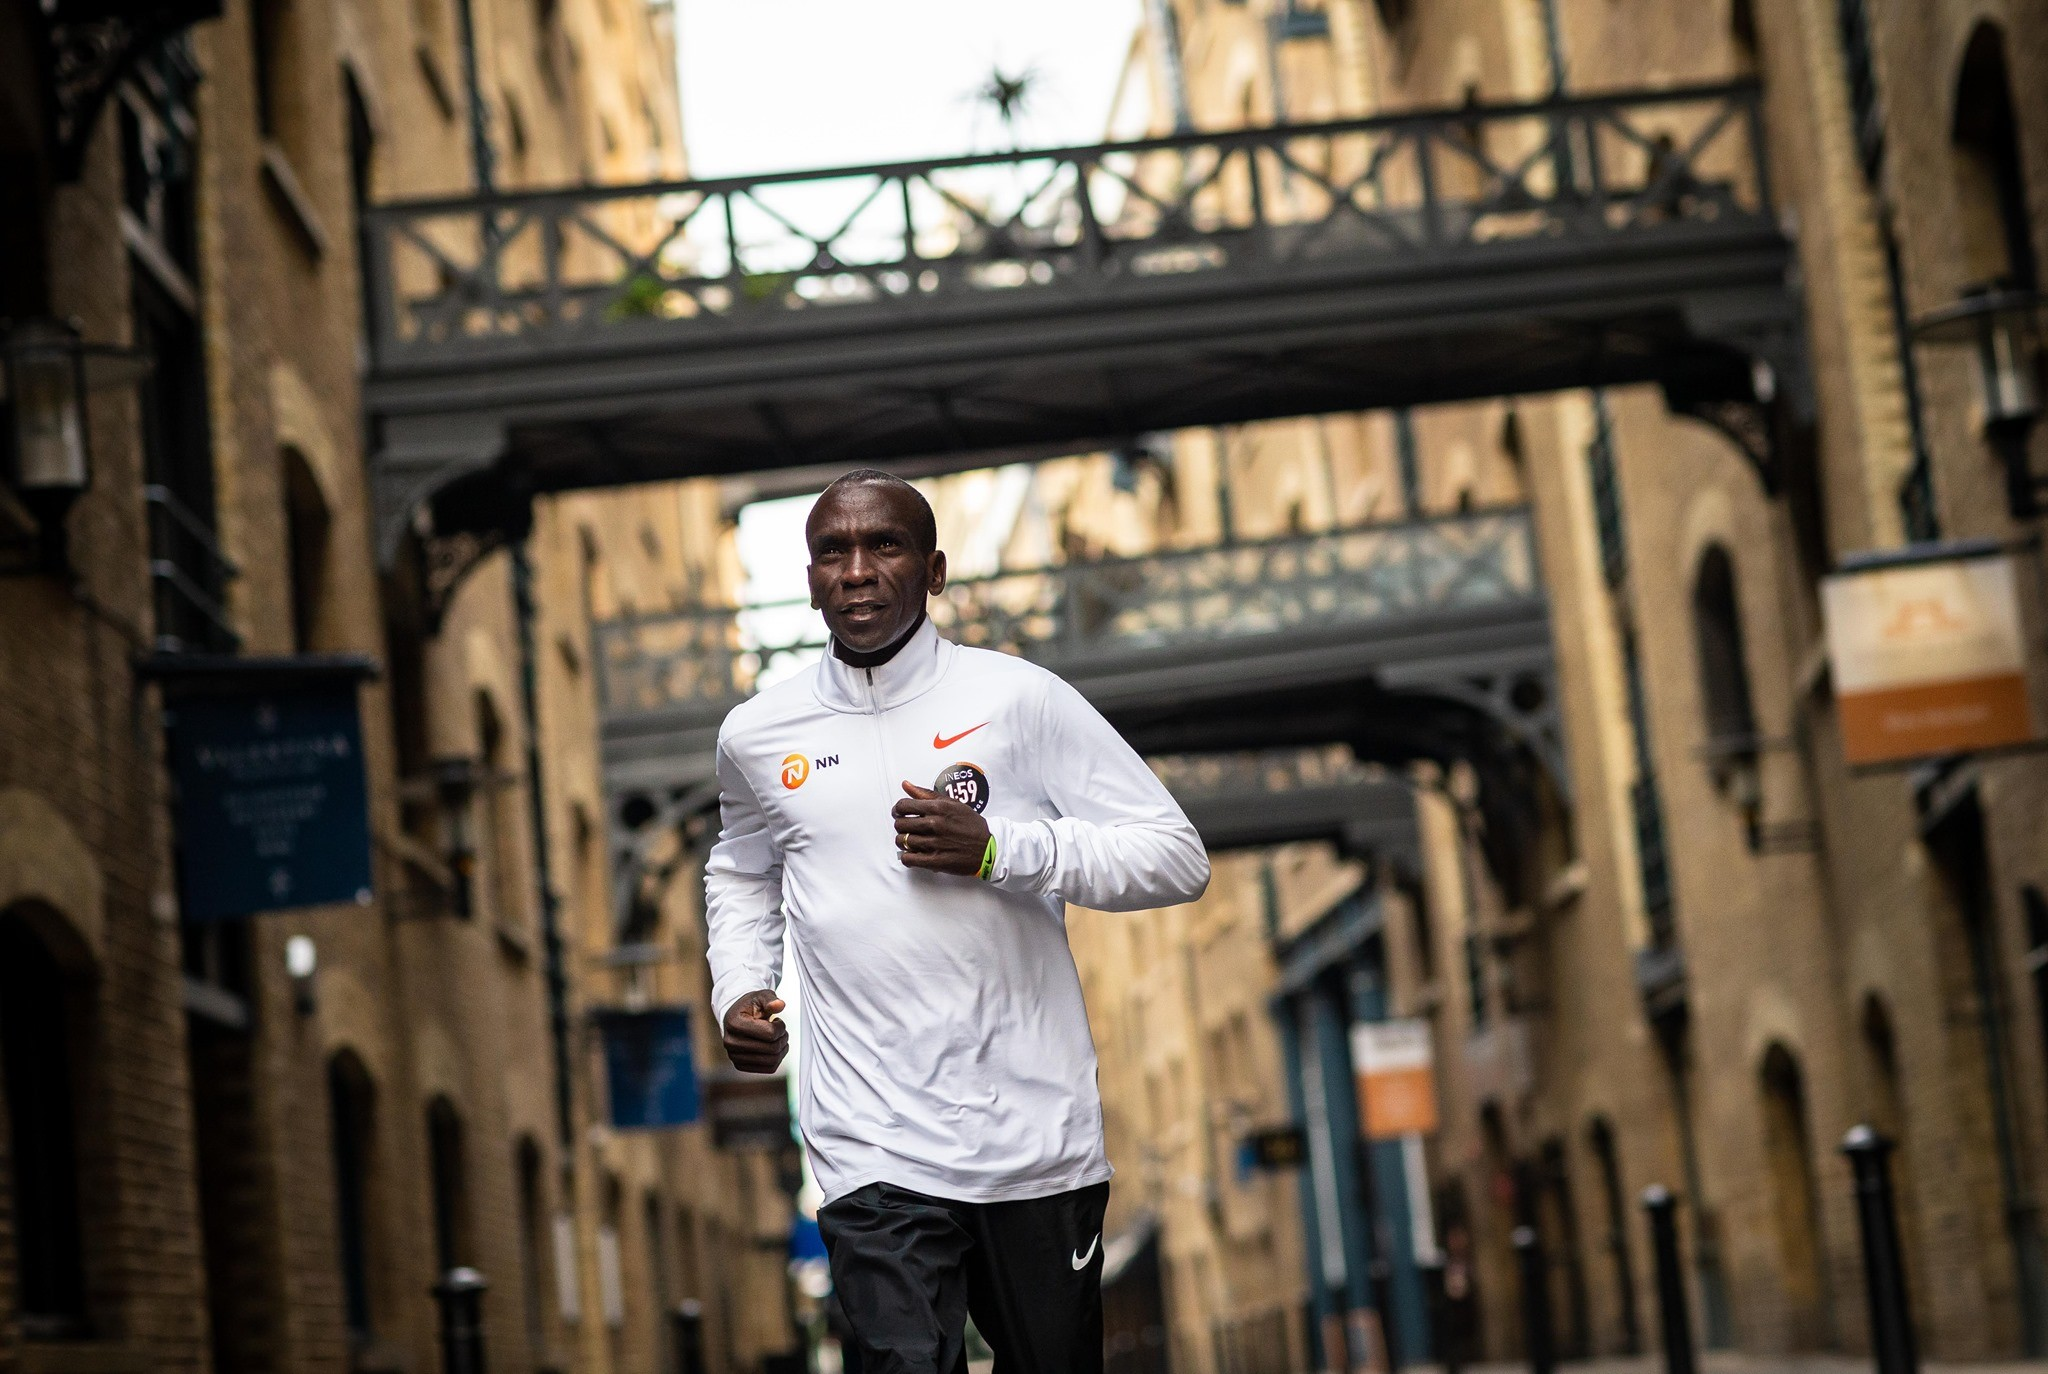 Kenyan Eliud Kipchoge will once again attempt to become the first athlete to break the two-hour marathon barrier in an event being staged in London later this year